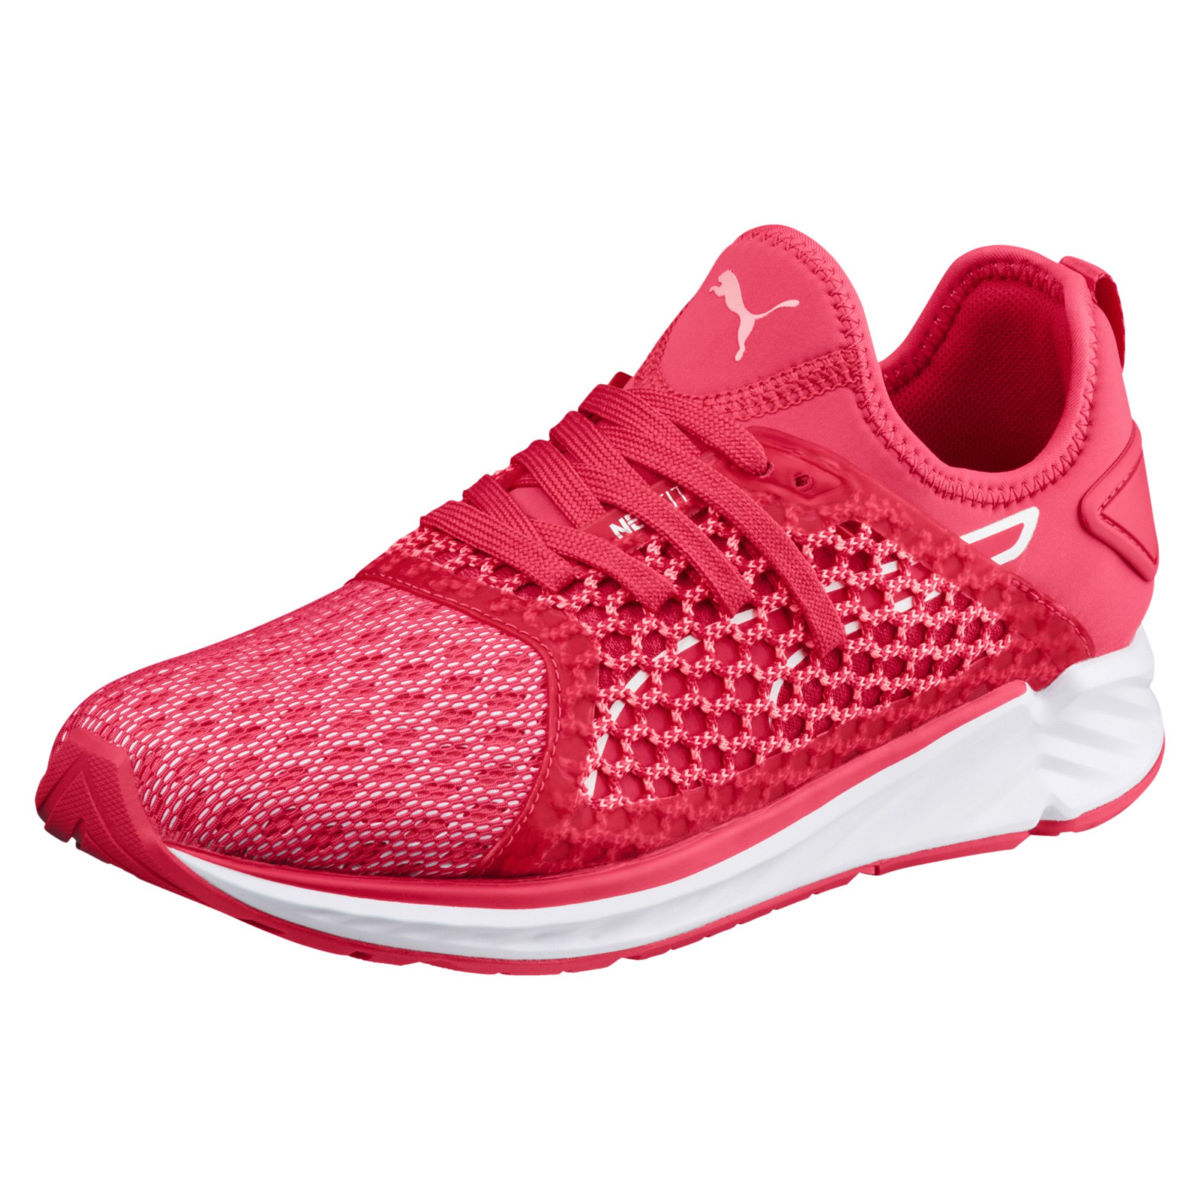 Chaussures Femme Puma Ignite 4 Netfit - UK 7 pink-fluopeach